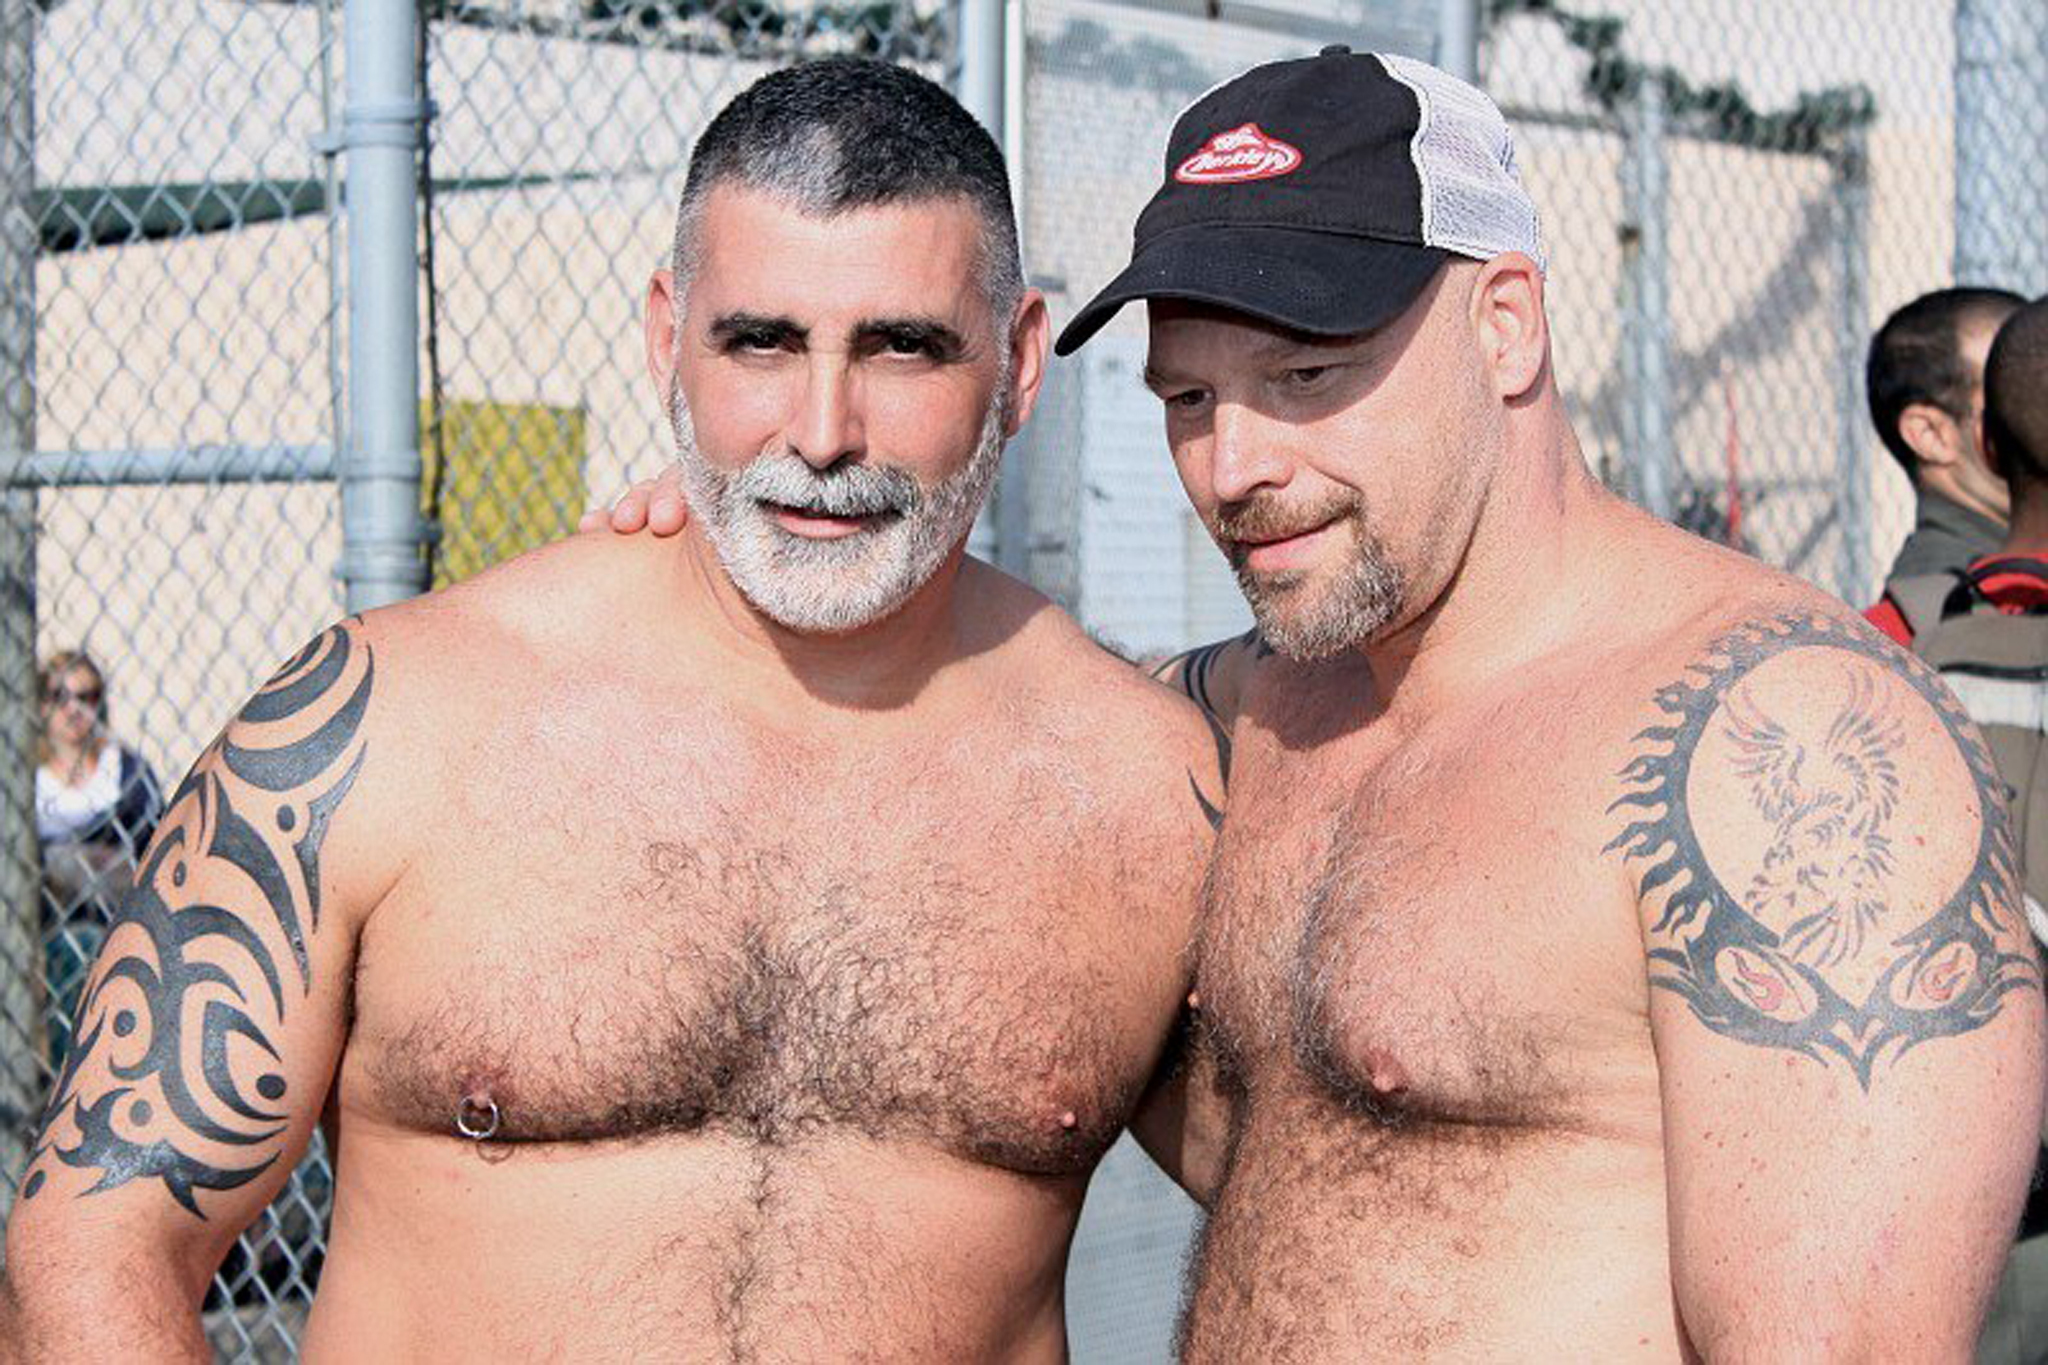 South florida bear pool gay